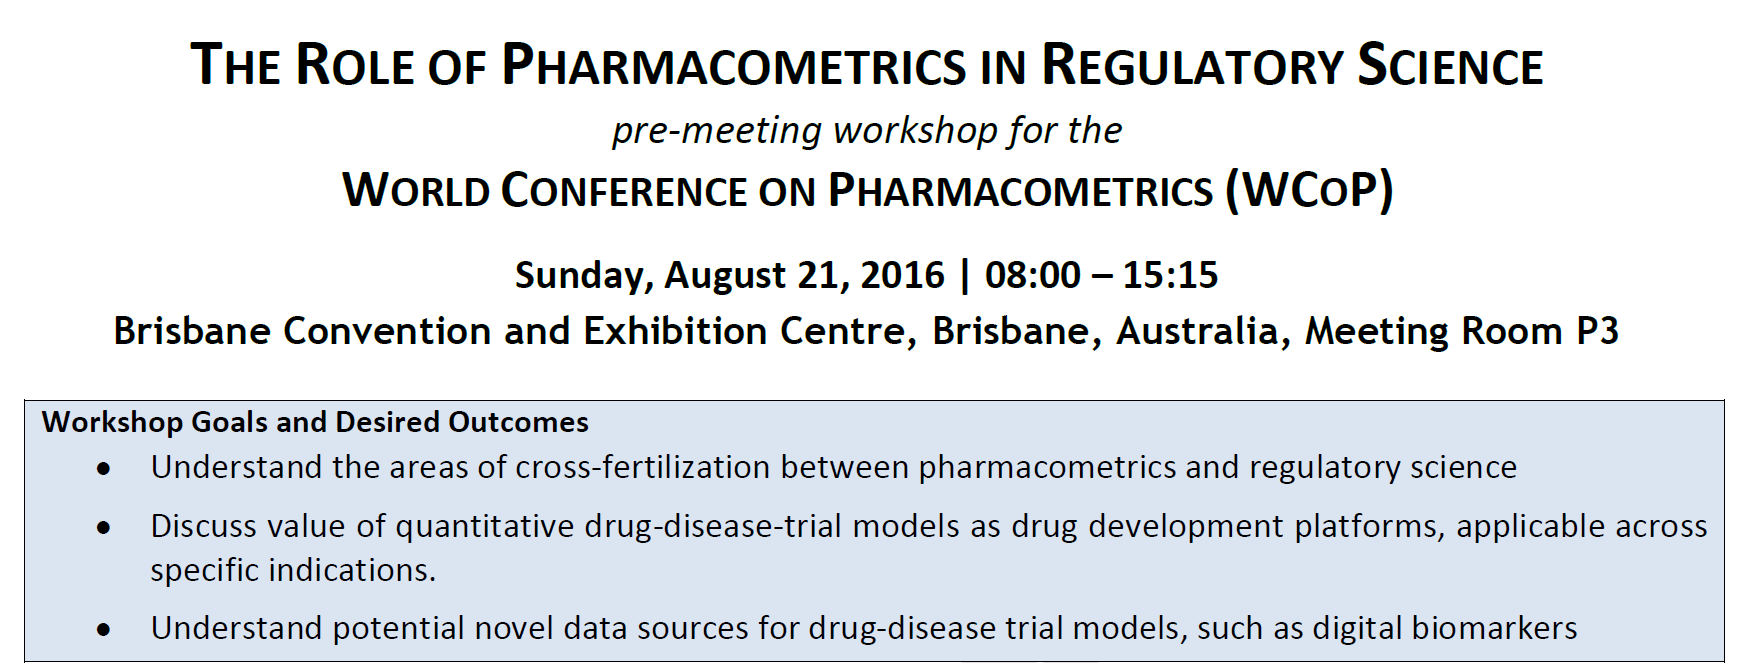 WCoP Pre-Meeting Workshop: Role of Pharmacometrics in Regulatory Science